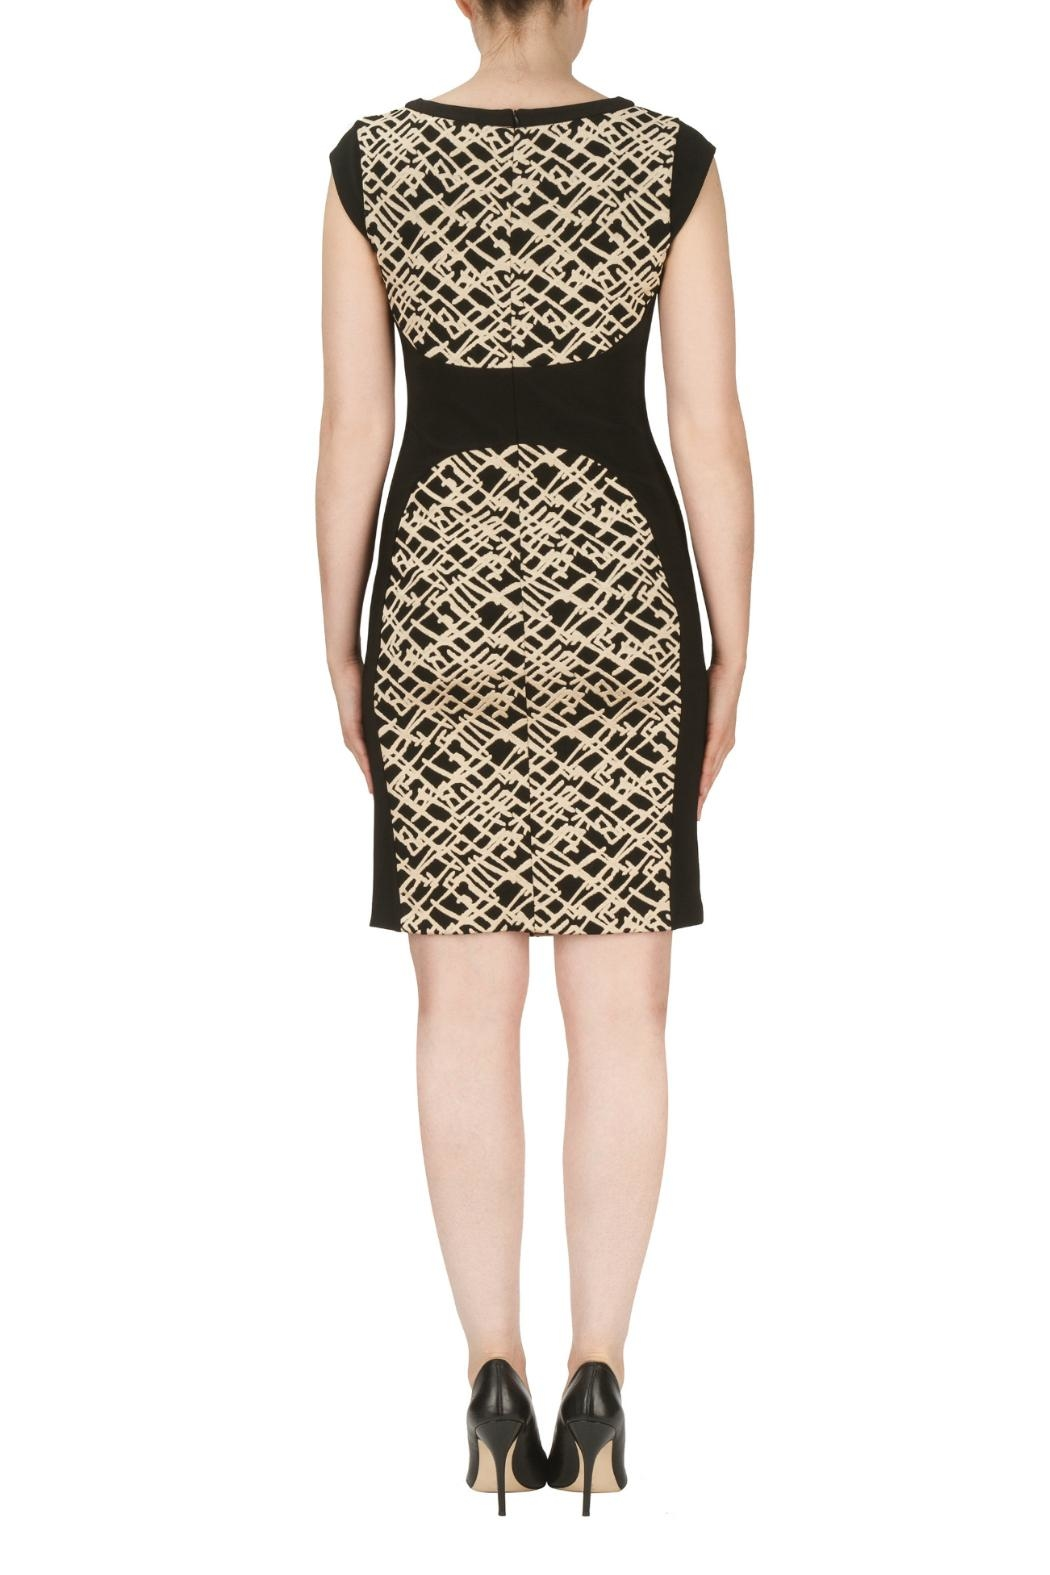 Joseph Ribkoff Belted Texture Dress - Side Cropped Image